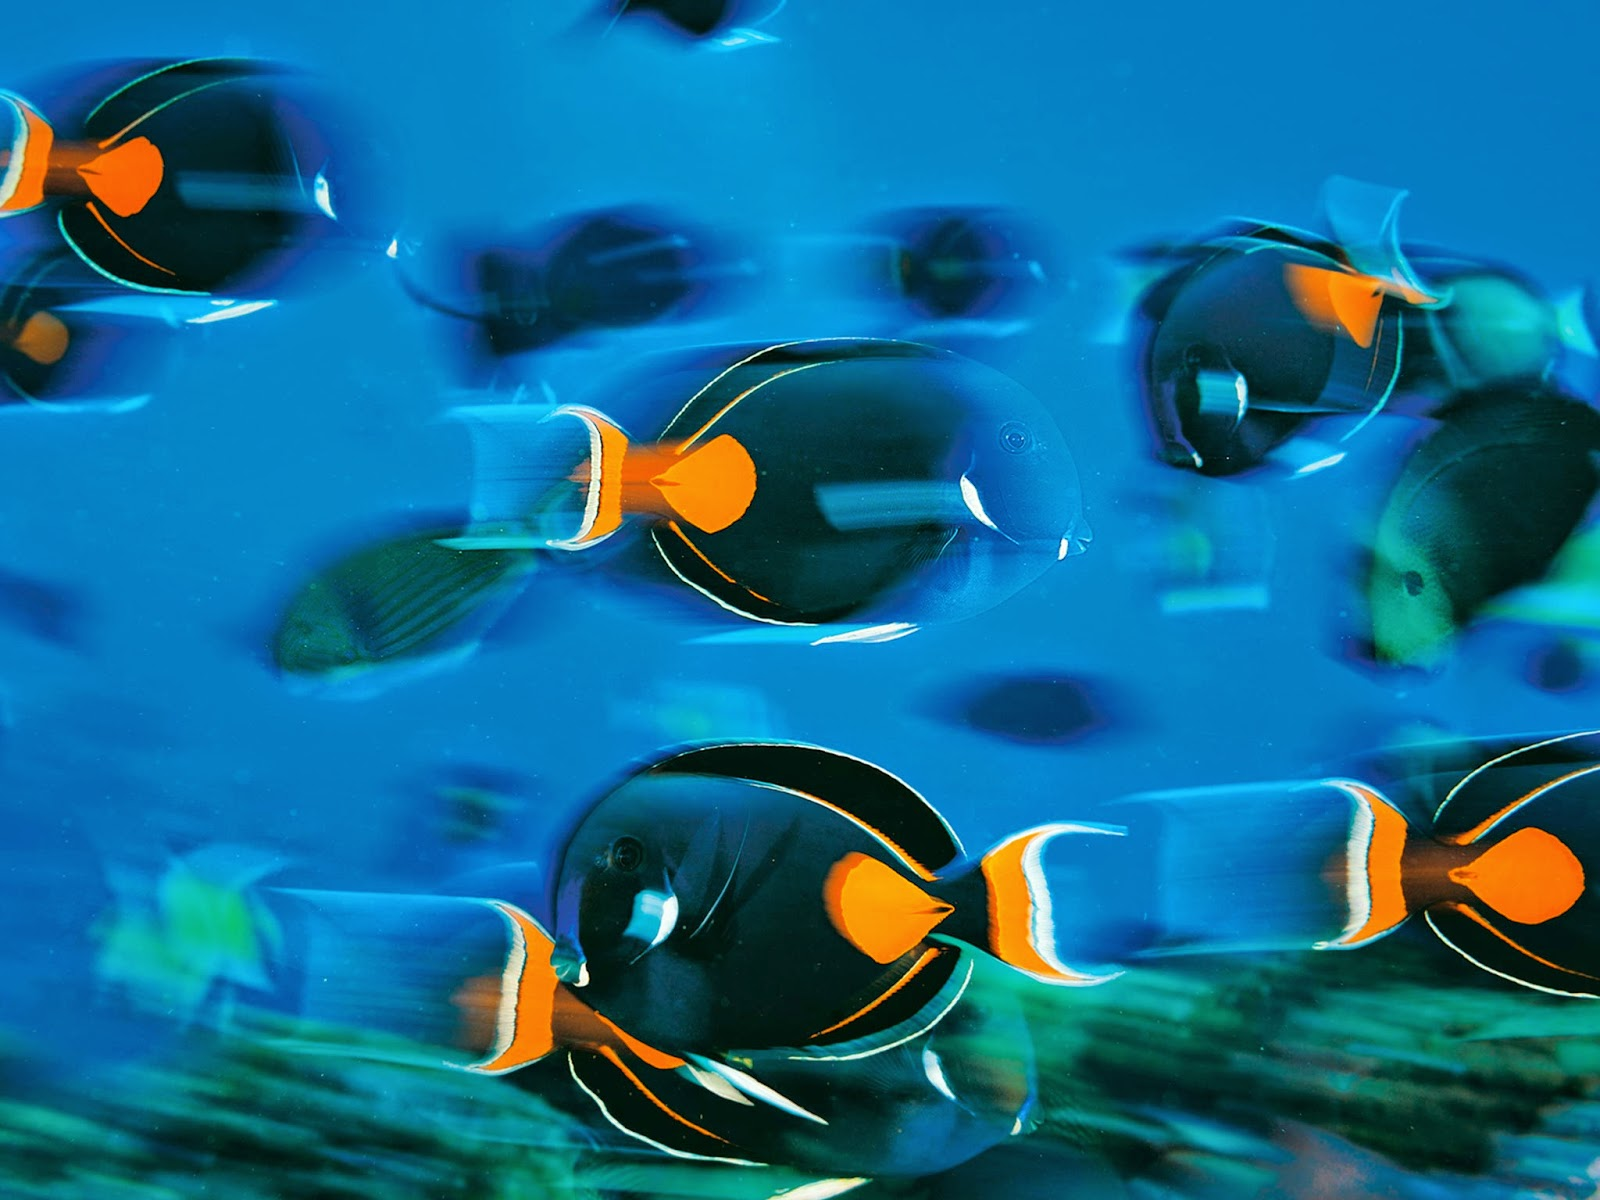 This Photo Shows A Contrast In Color With The Complementary Colors Blue And Orange Photograph By Brian Skerry